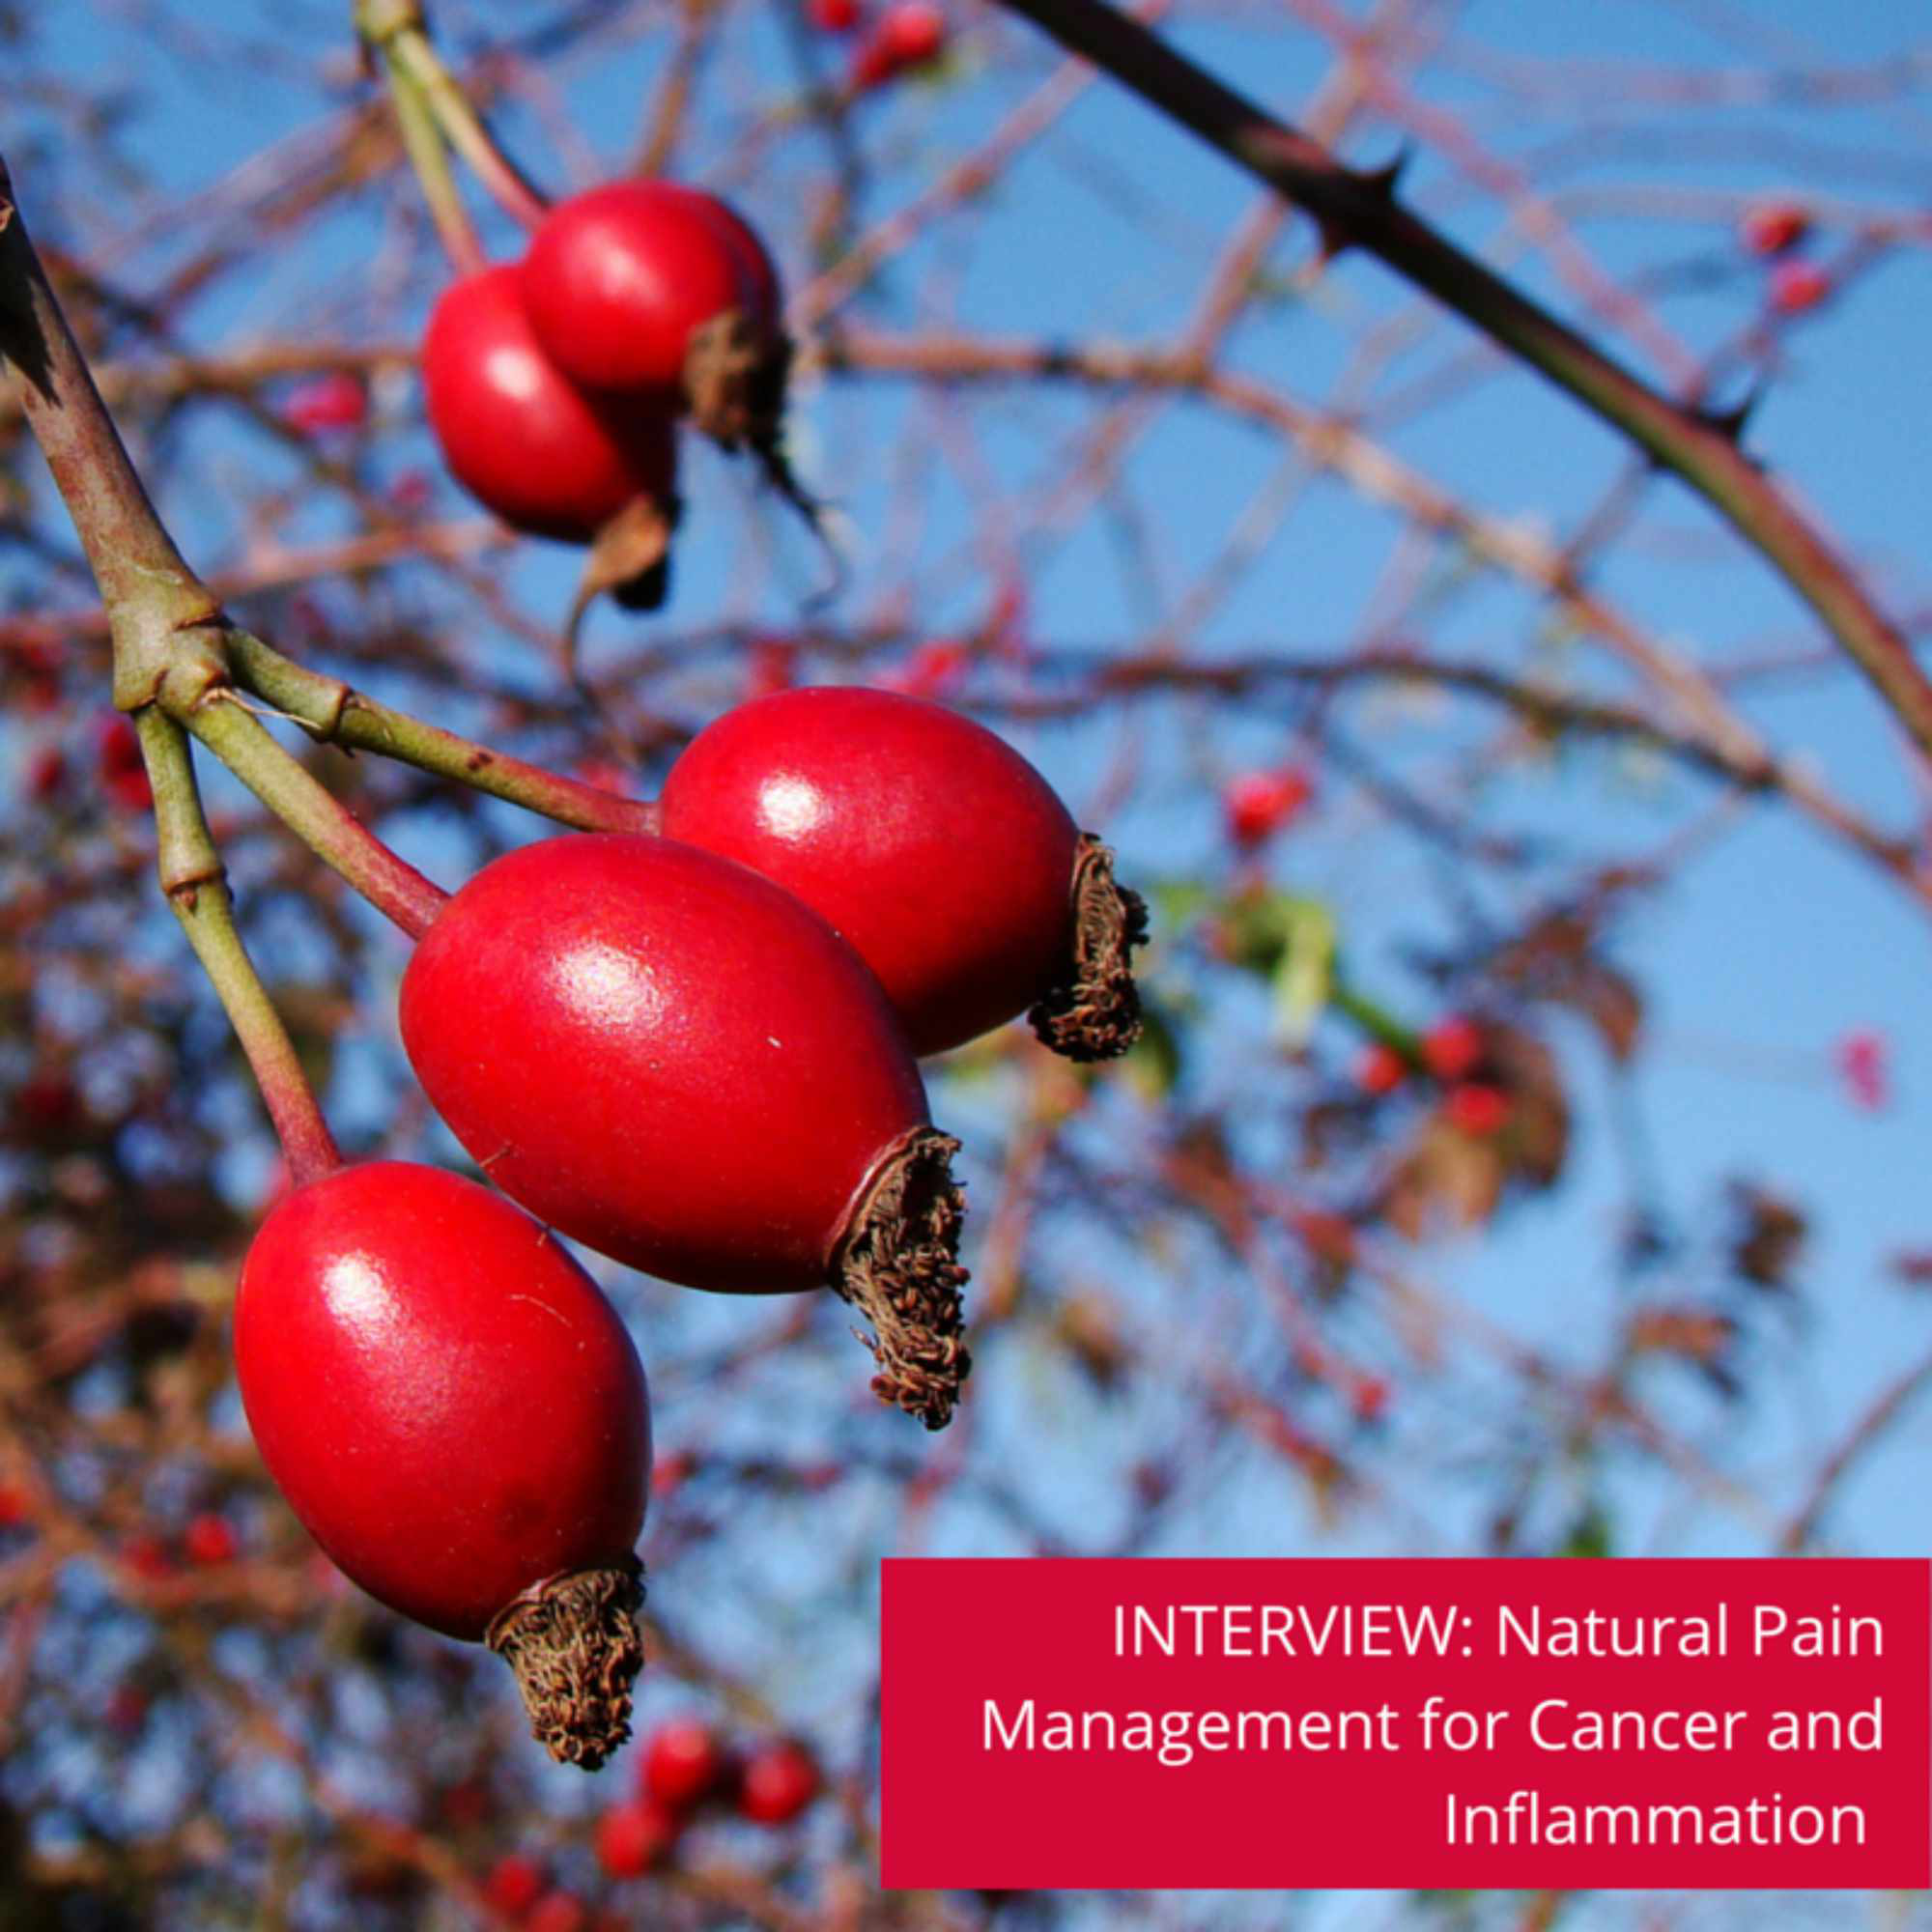 Breakthrough in natural pain management for cancer and inflammation